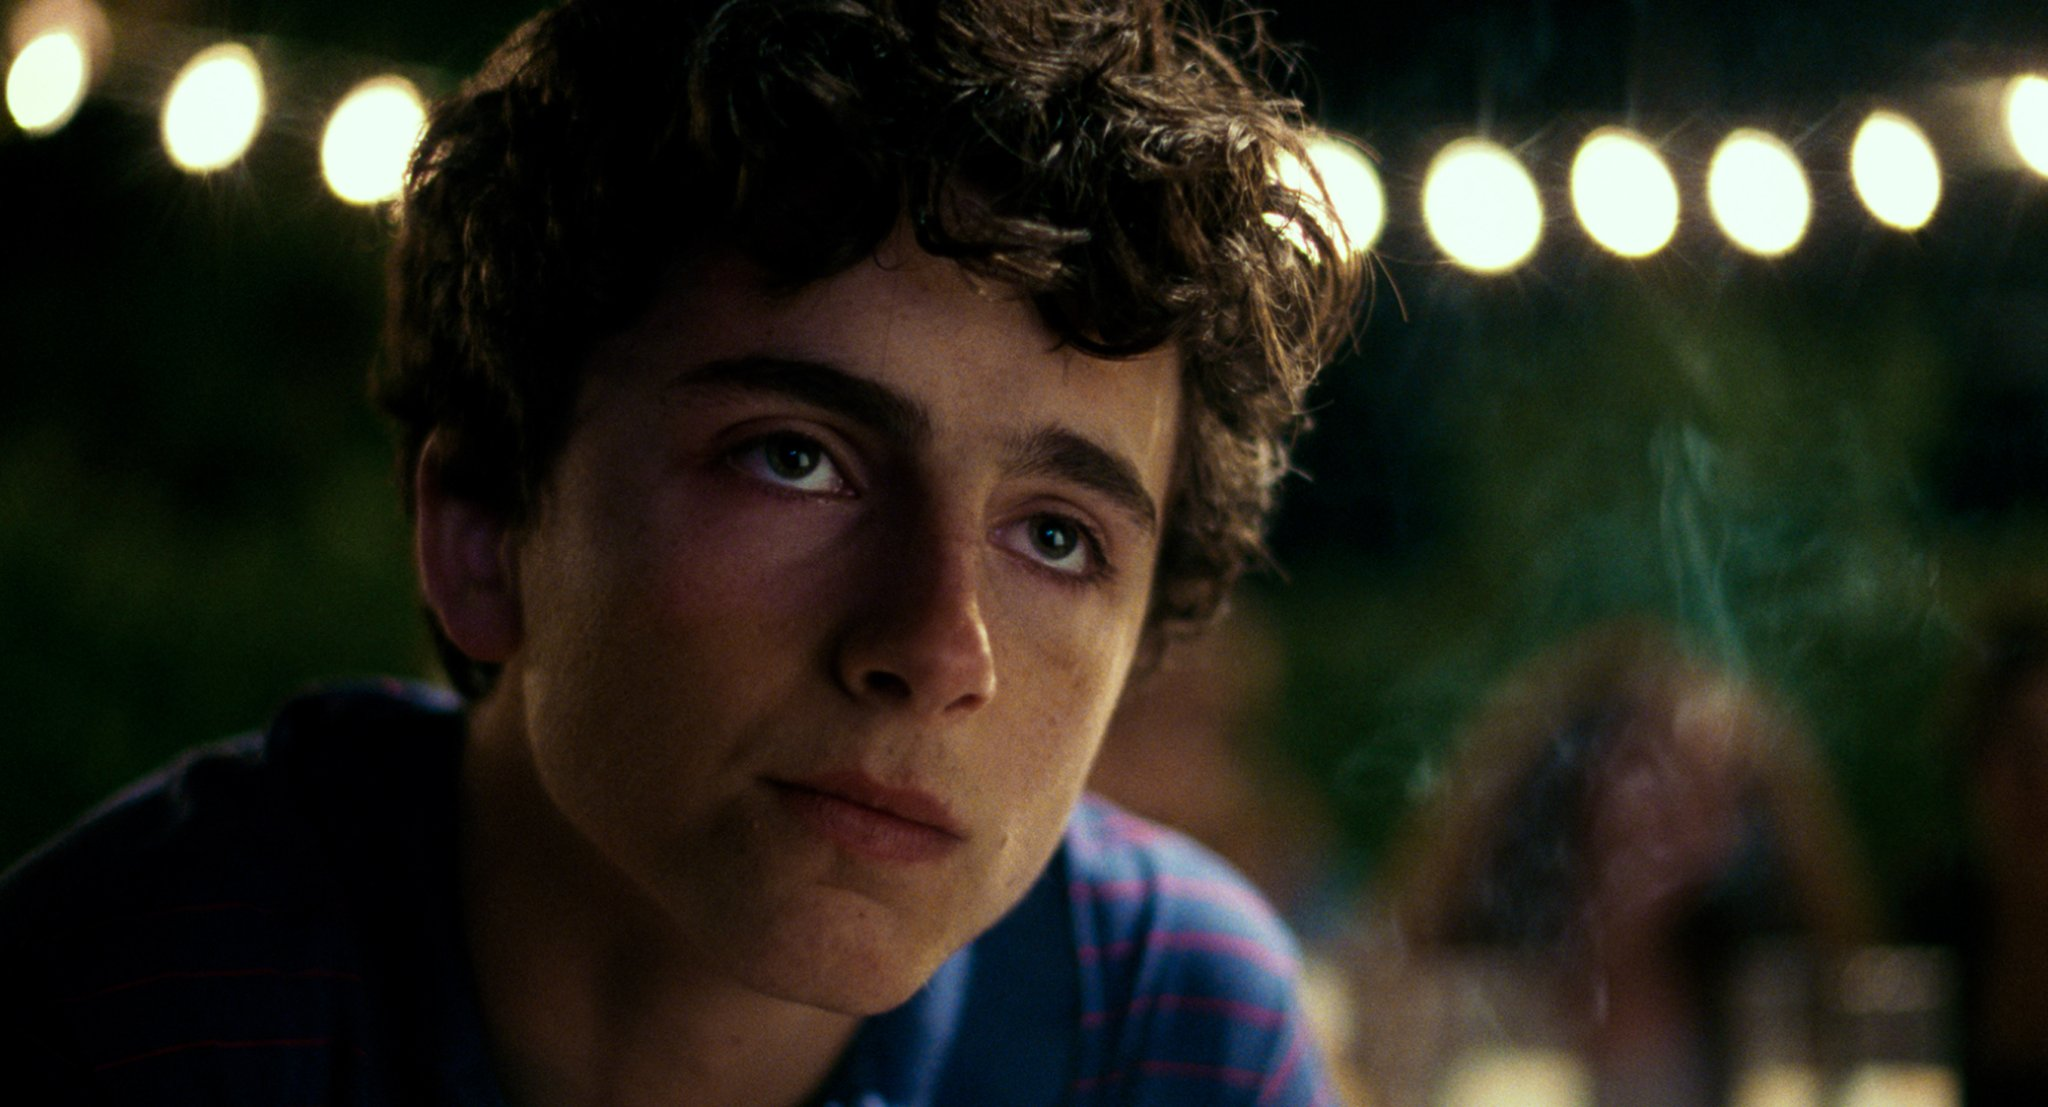 Call Me By Your Name: More than just a romantic story